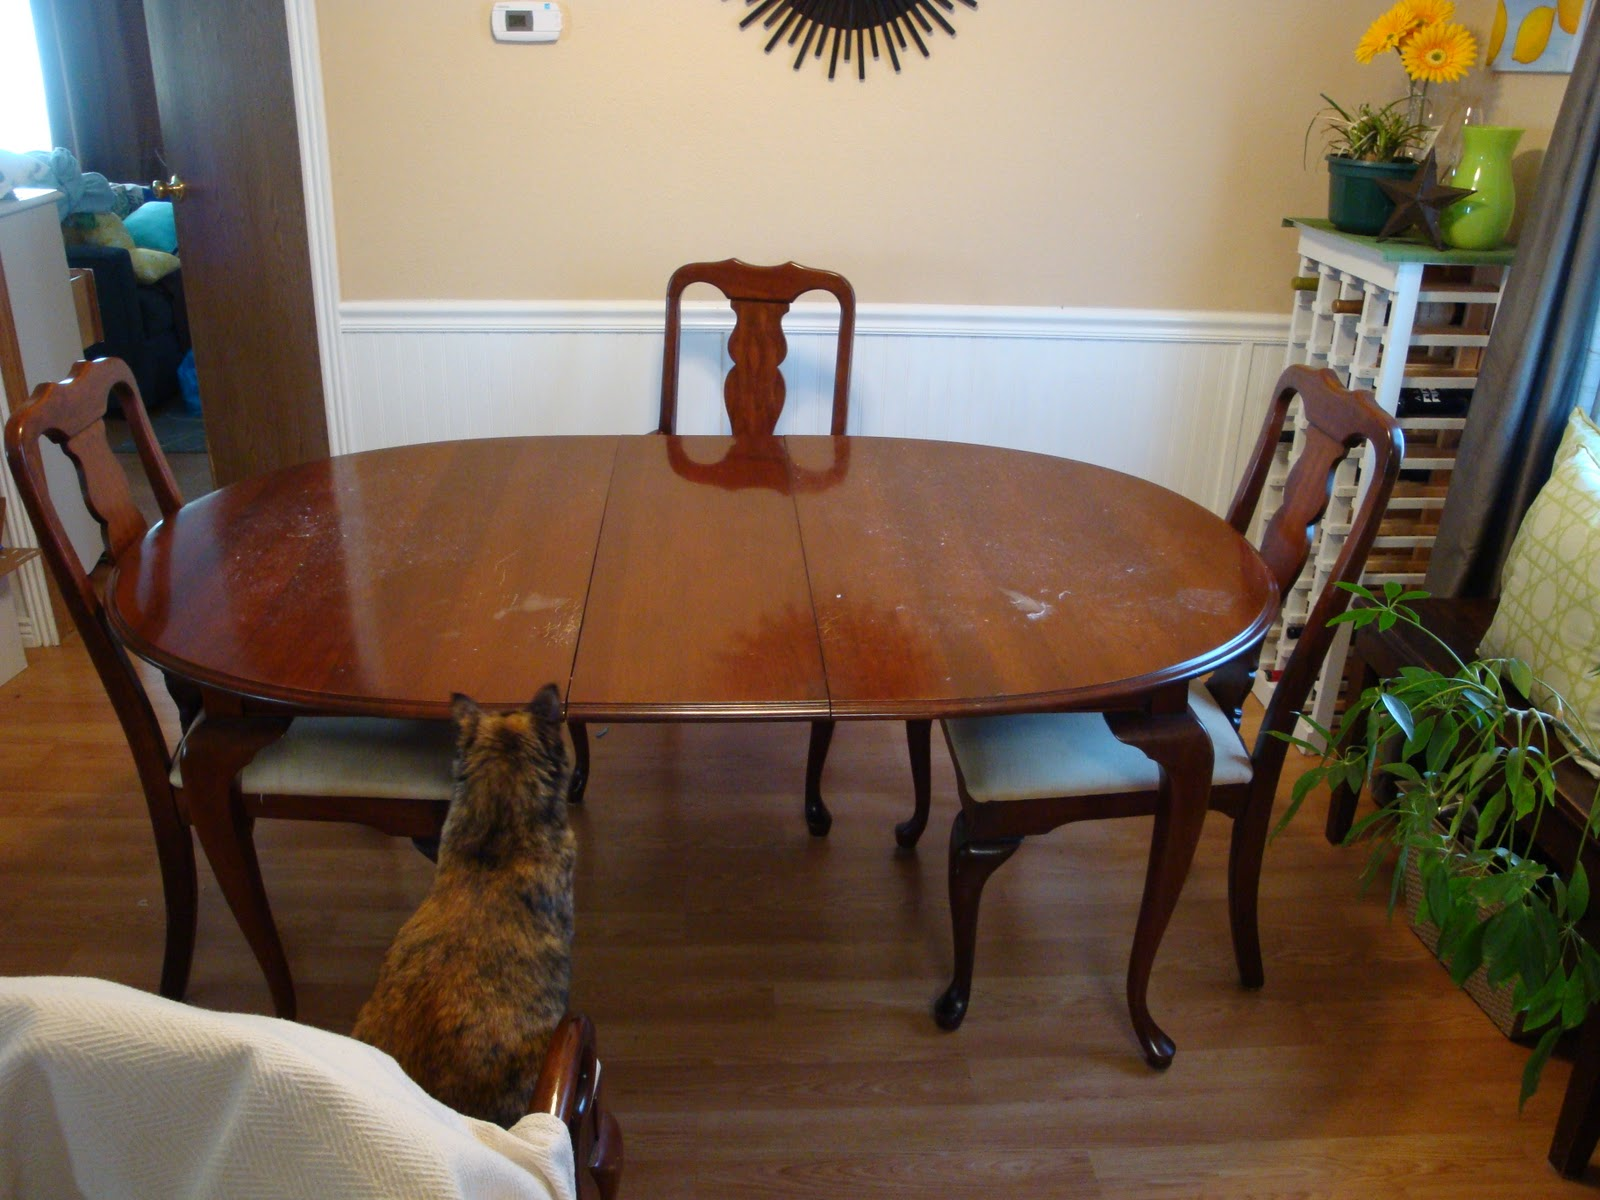 Im Thinking That Selling The Table Is Best Way To Start Making Some Extra Cash For Buying My New Furniture Does Have Slight Scratches